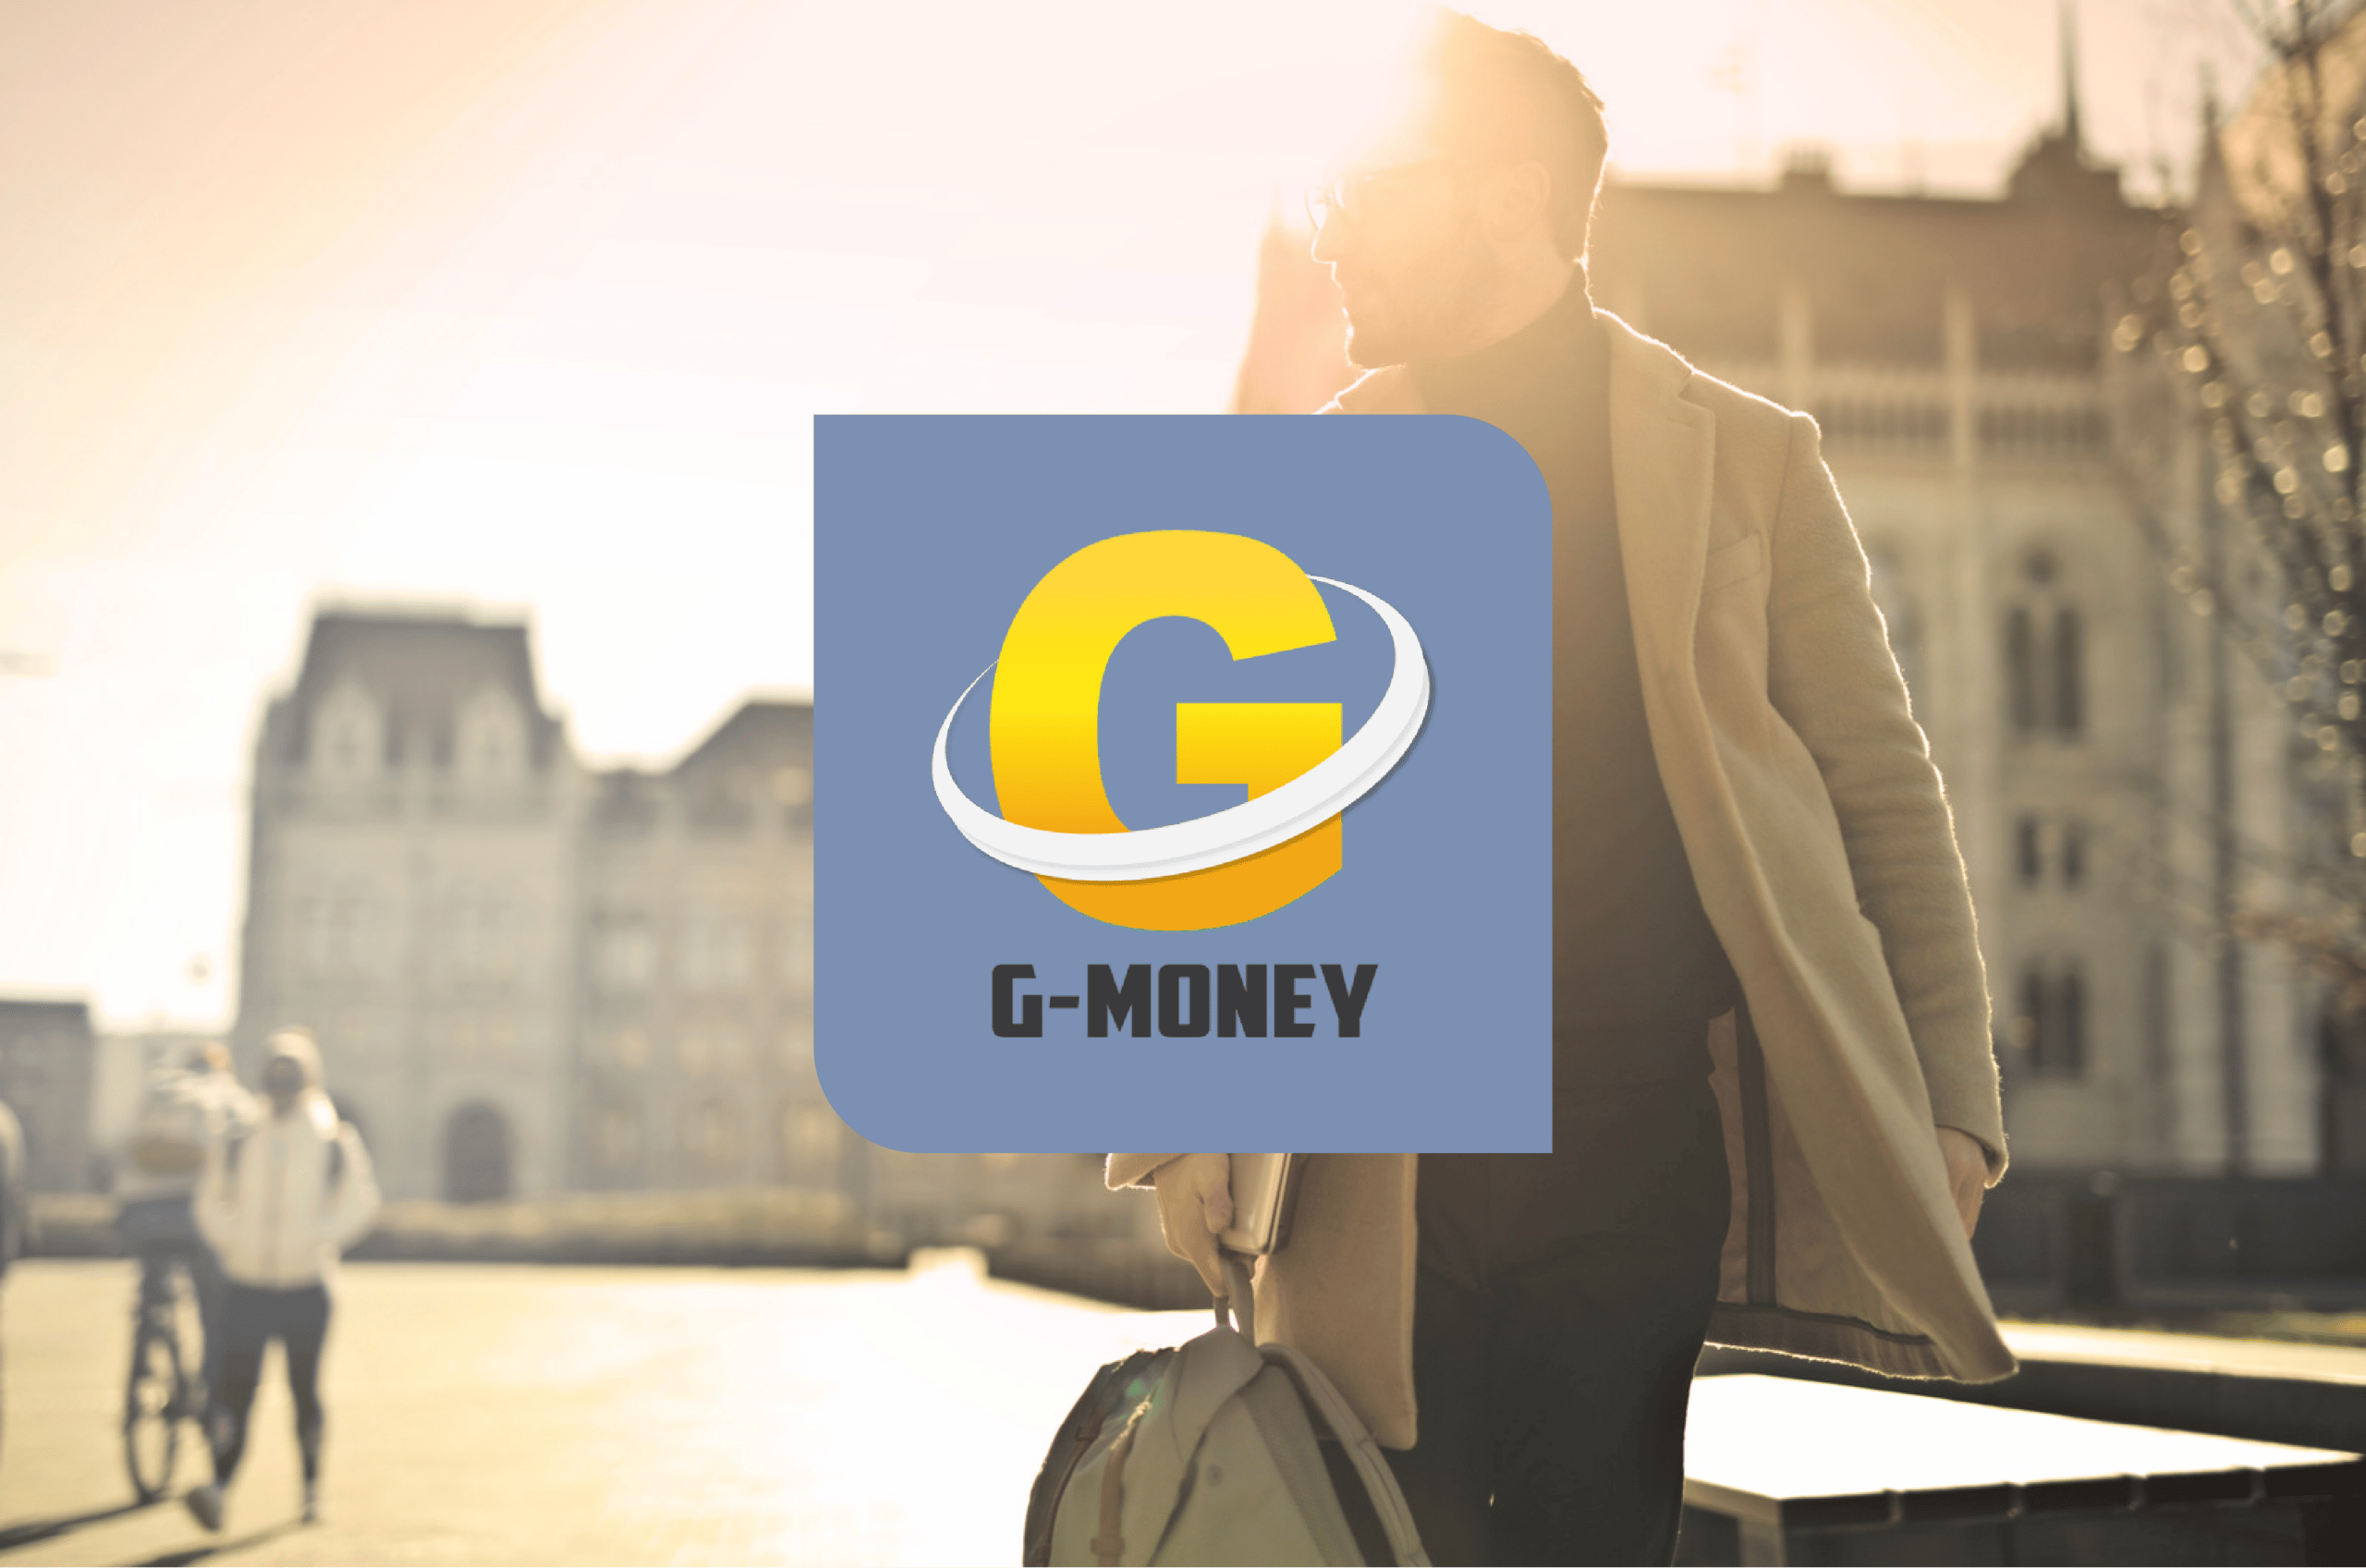 4 Reasons why you should adopt the G-Money lifestyle for mobile payments